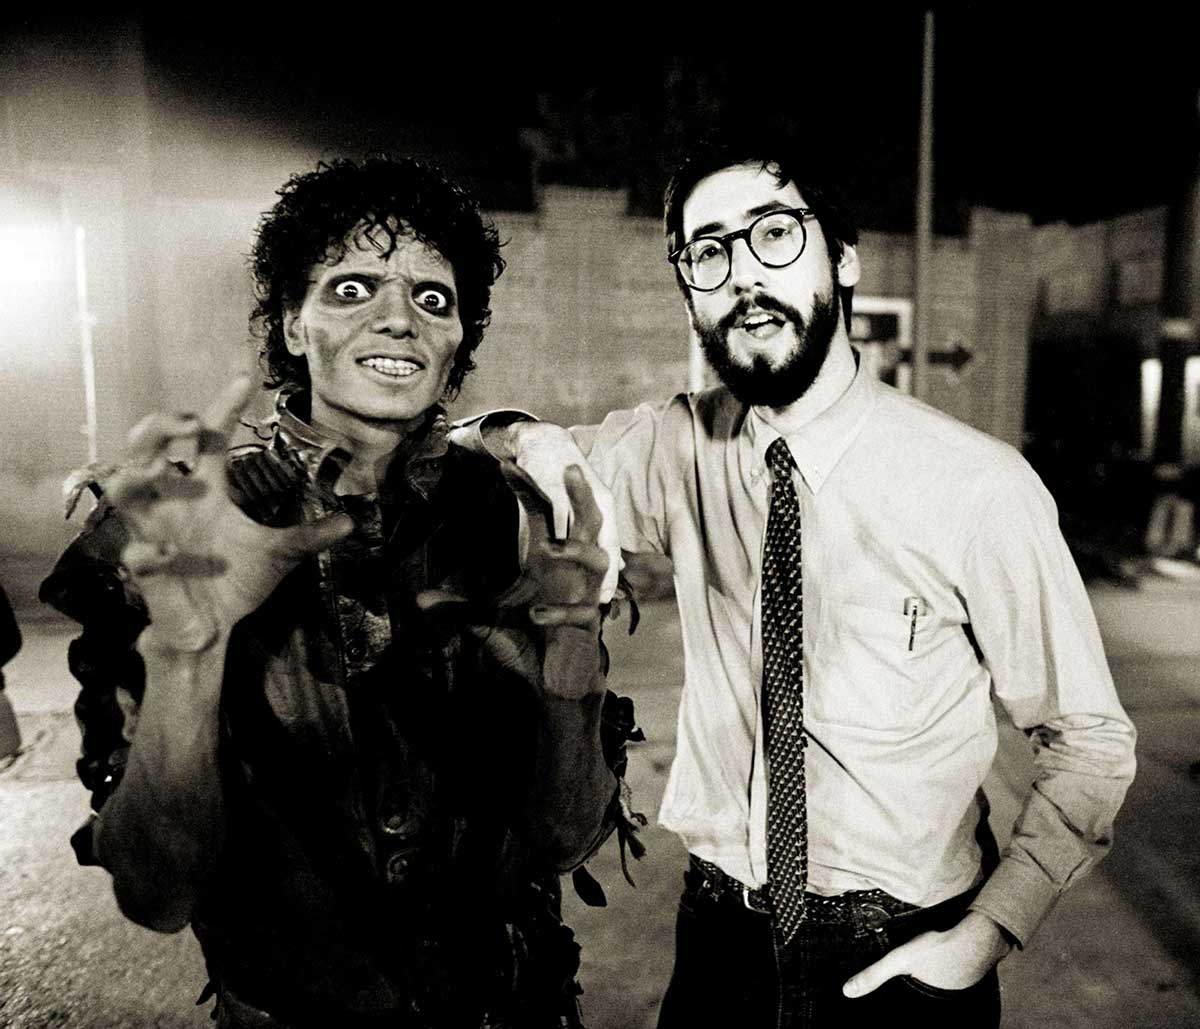 Michael-Jackson-and-John-Landis-on-the-set-of-the-Thriller-music-video